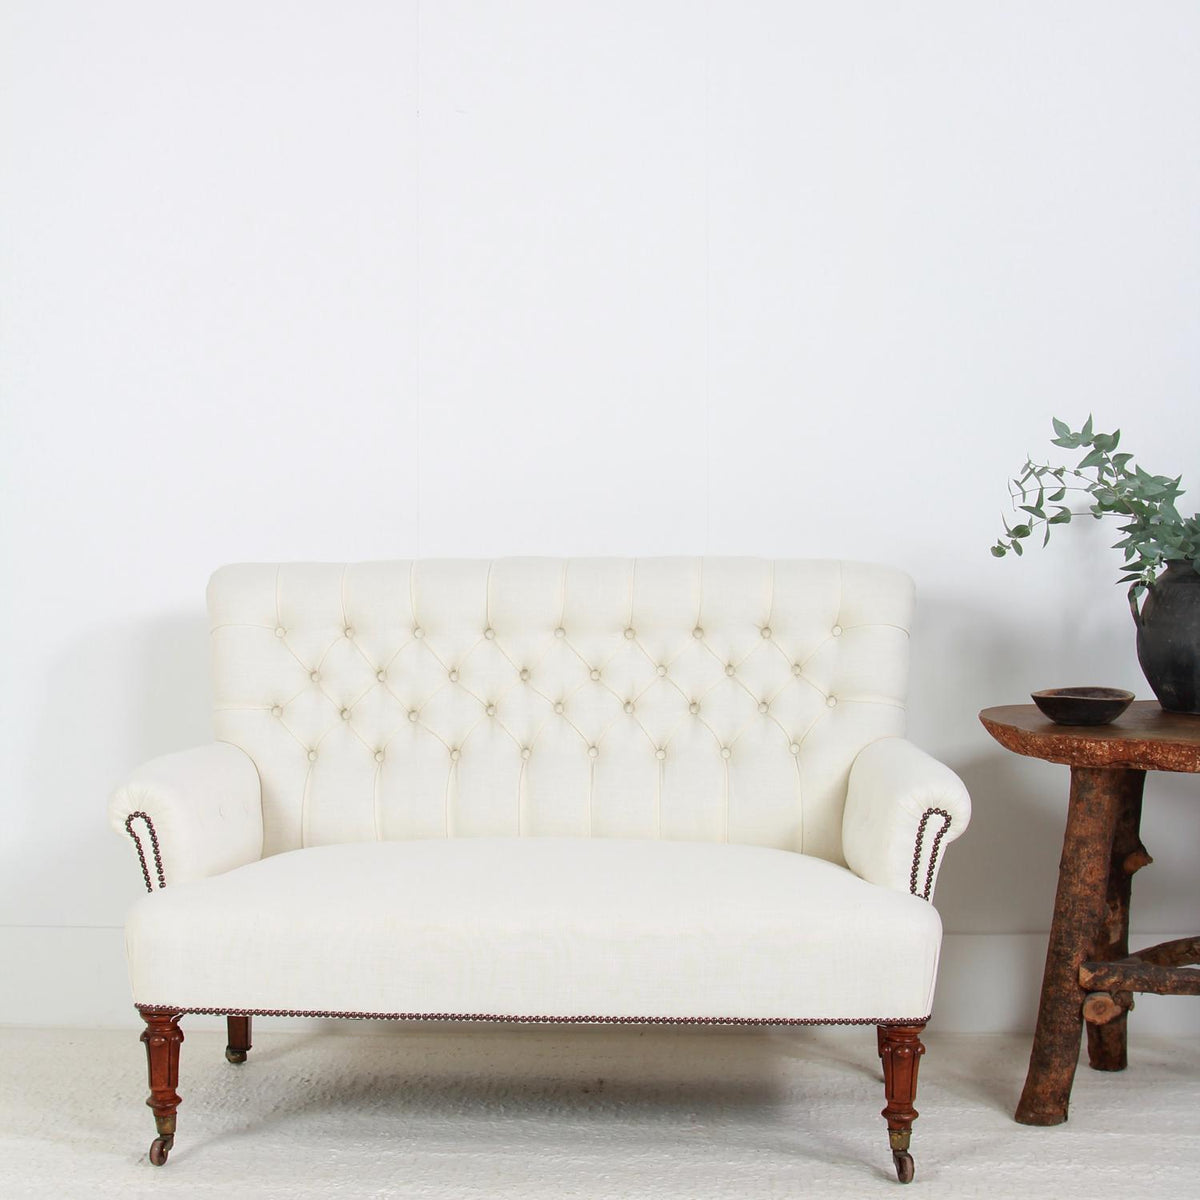 English Mid 19th Century Button Back Sofa in Linen